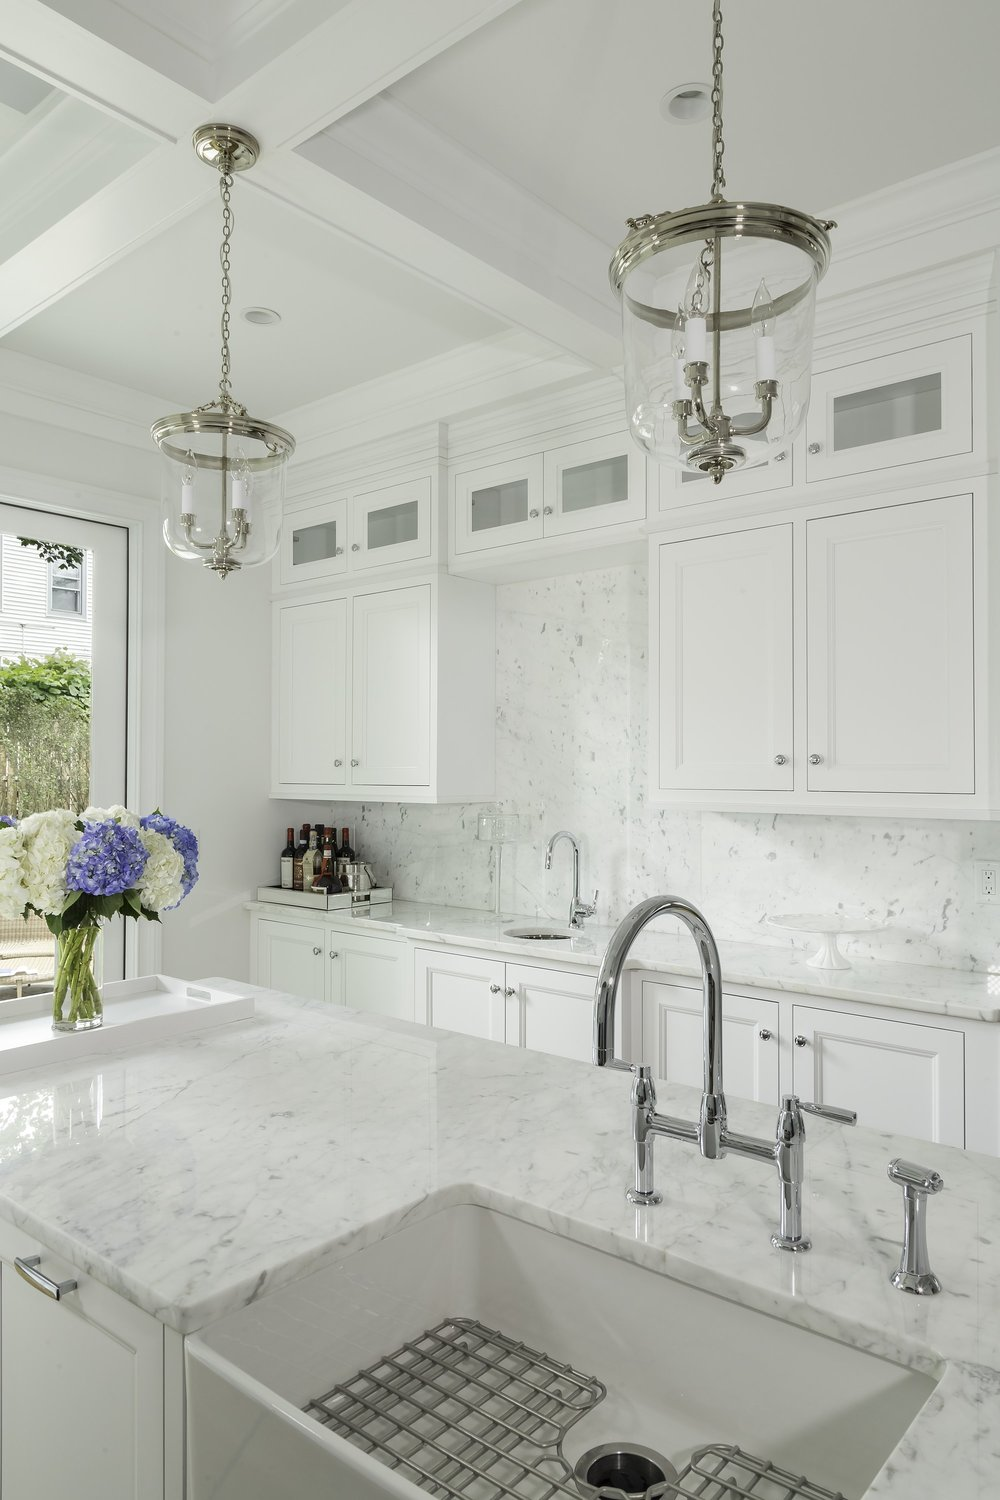 Transitional style kitchen with marble countertop and double hand faucet